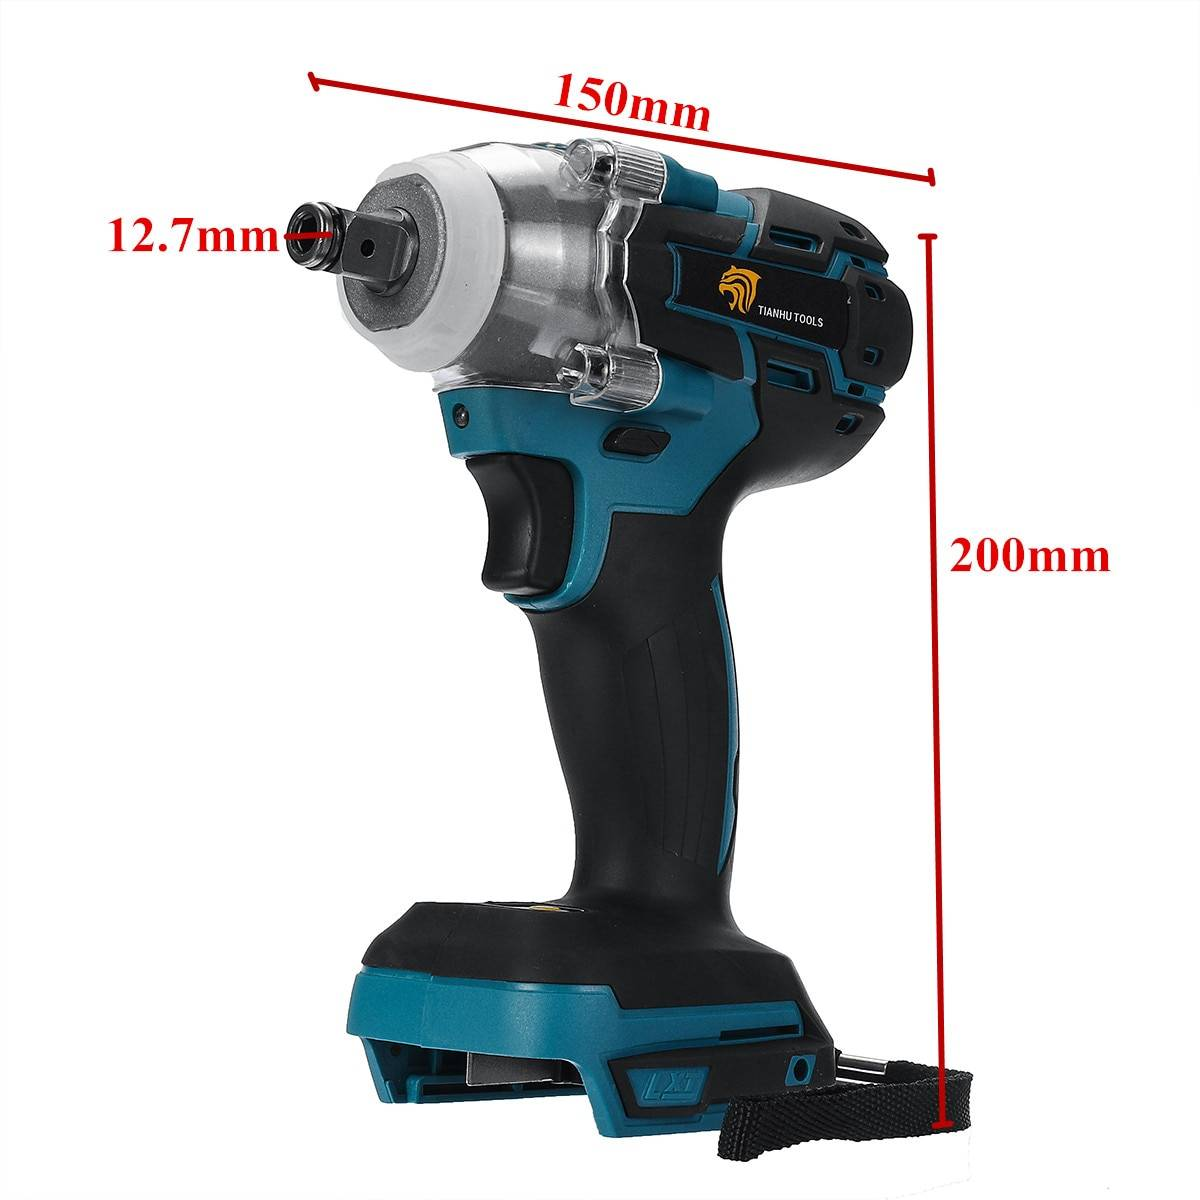 18 V Electric Impact Wrench Home Improvement & Tools Power Tools Ships From : China|Czech Republic|United States|Spain|Australia|Russian Federation|France